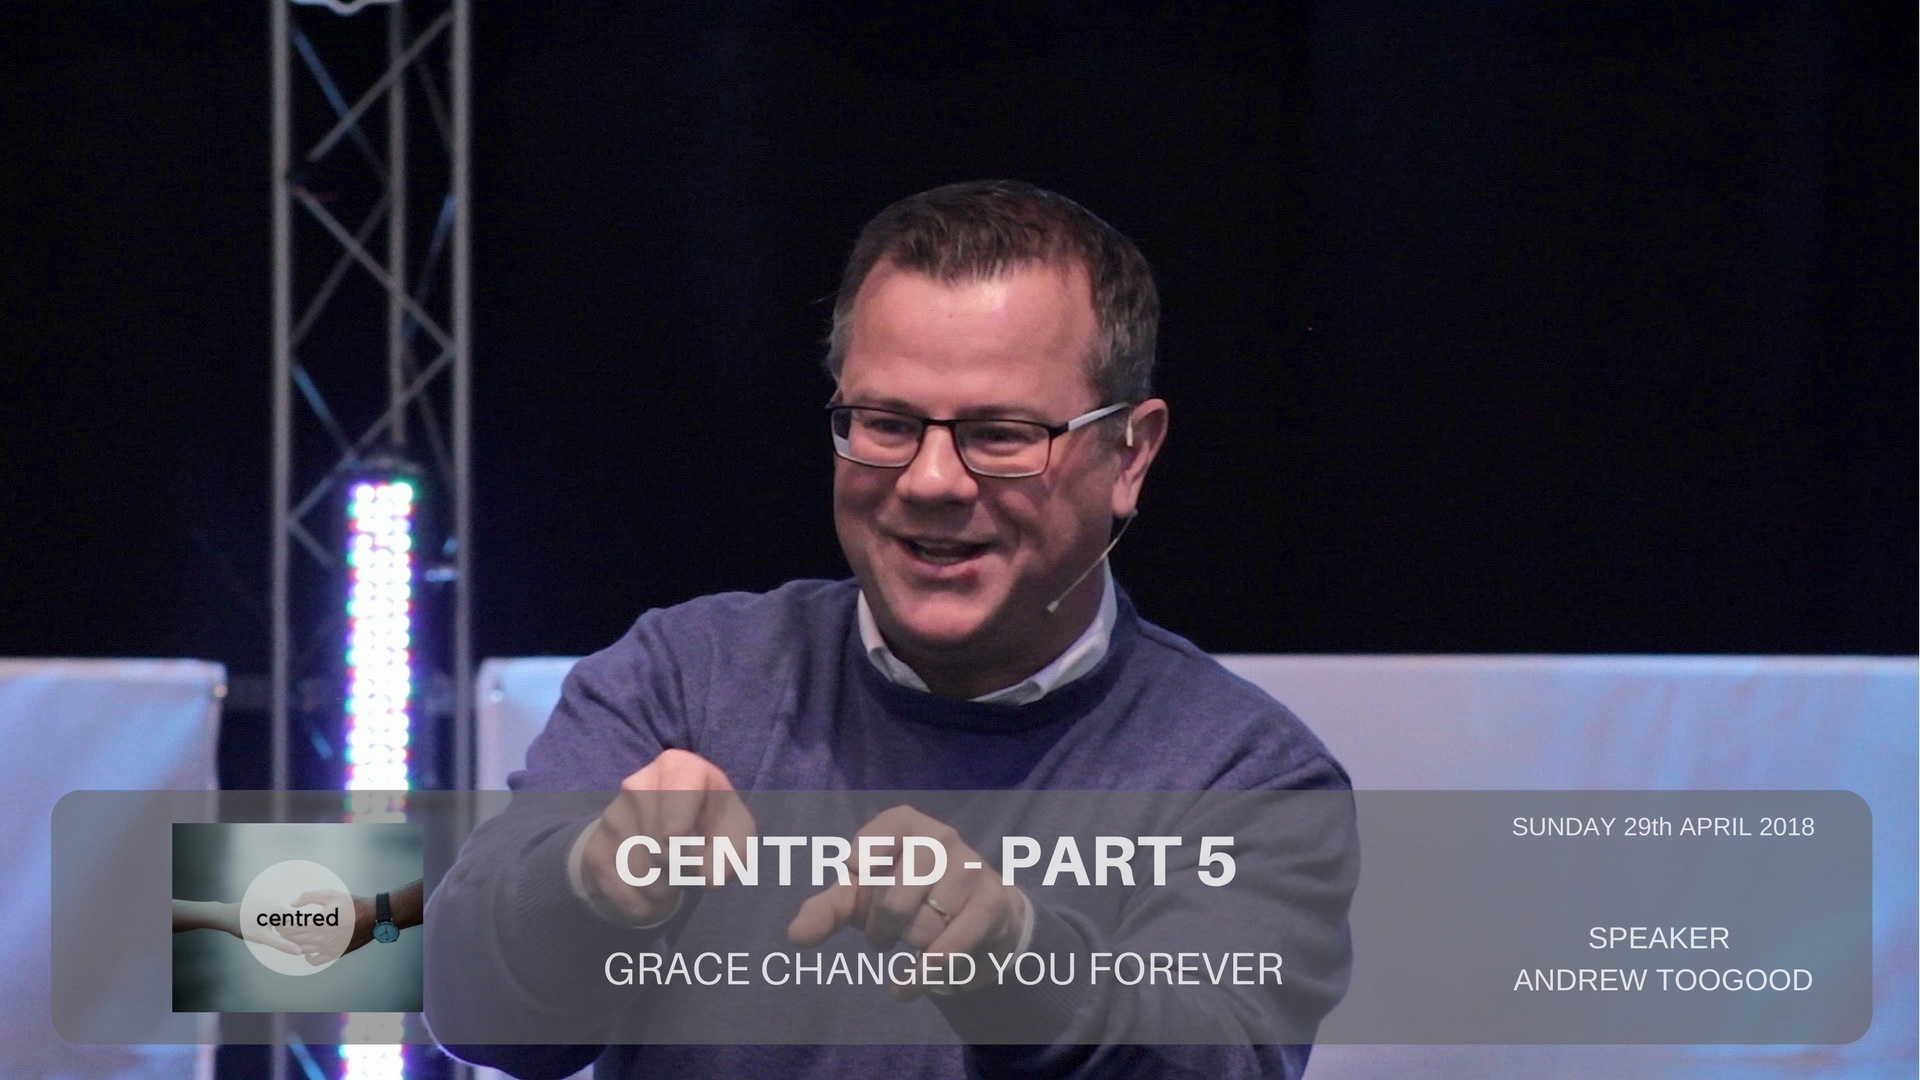 Centred Part 5 - Grace changed you forever